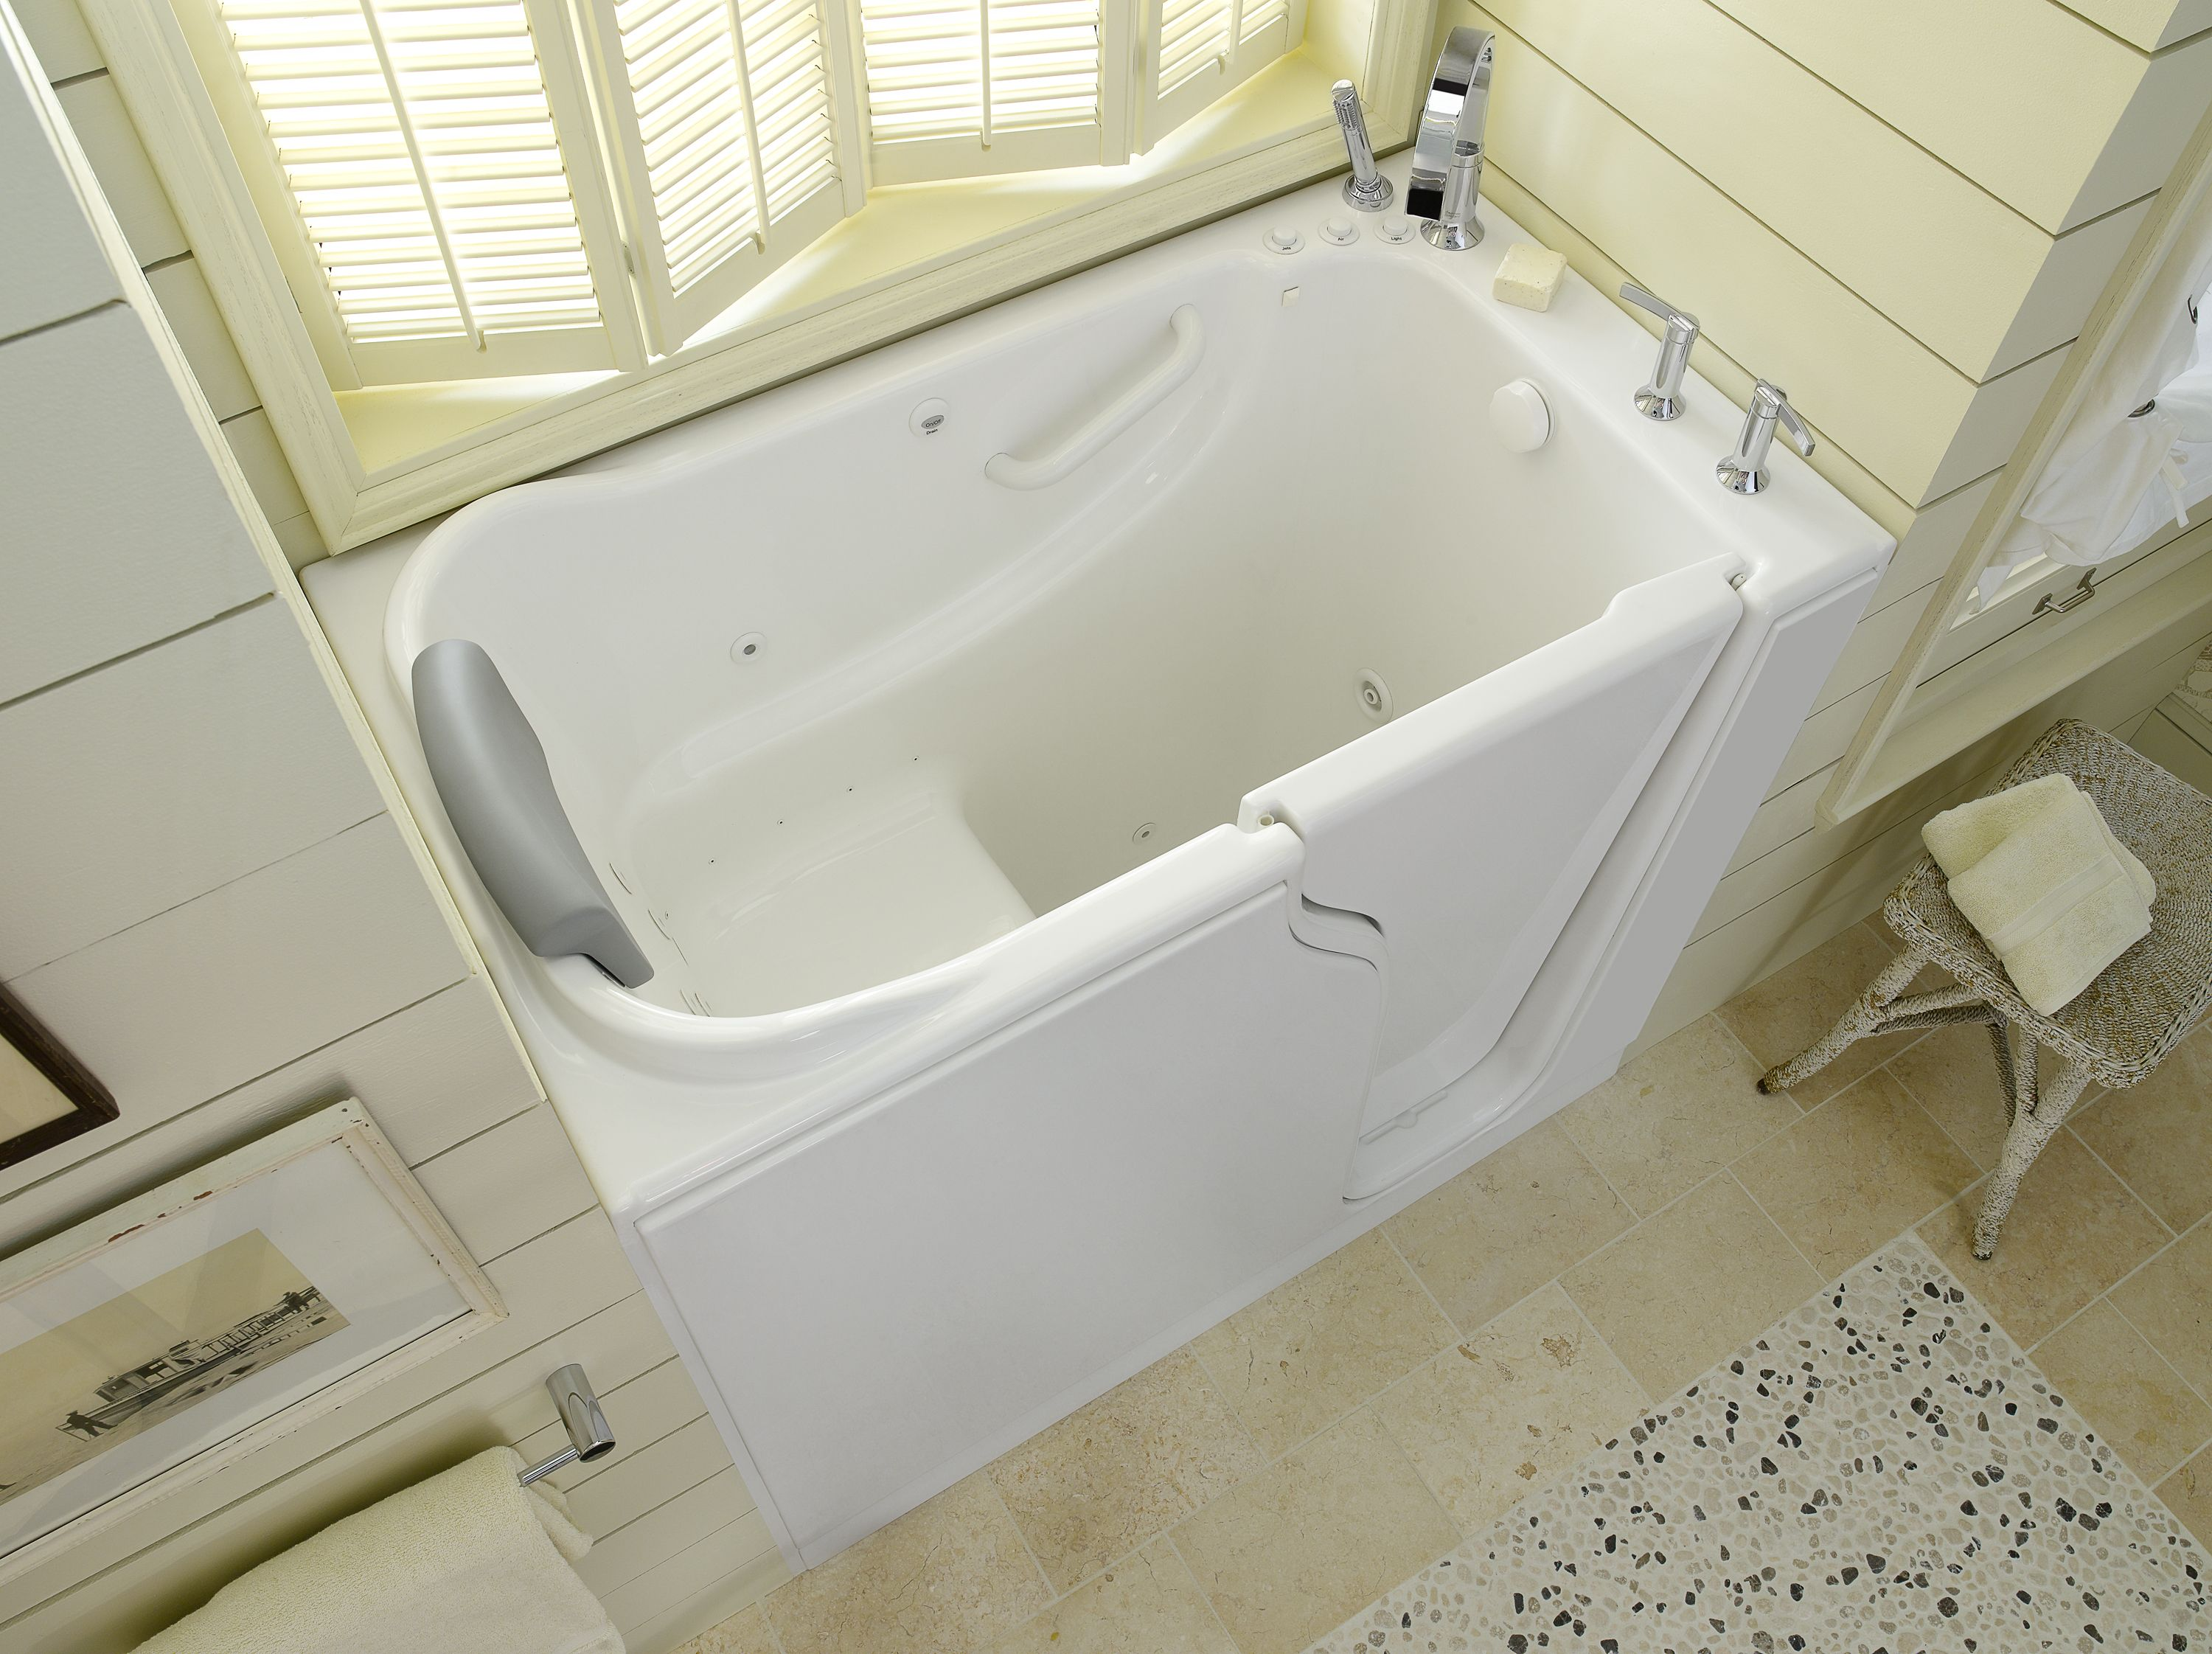 Benefits Of Walk In Tubs In 2020 Walk In Tubs Bathtub For